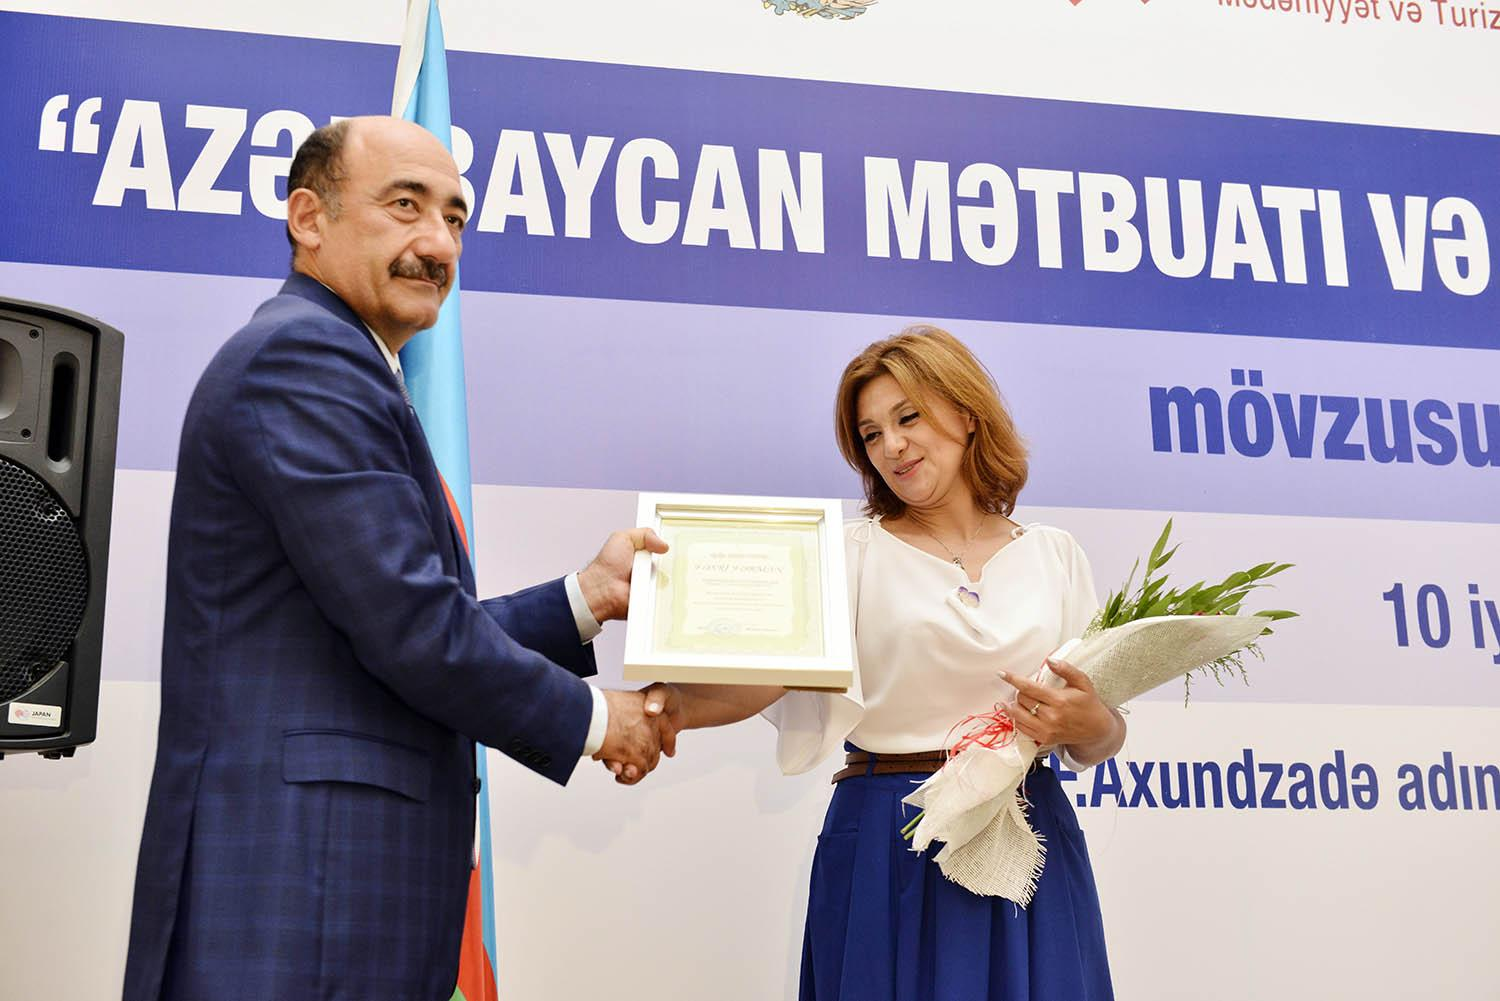 Ministry of Culture and Tourism awarded a group of journalists